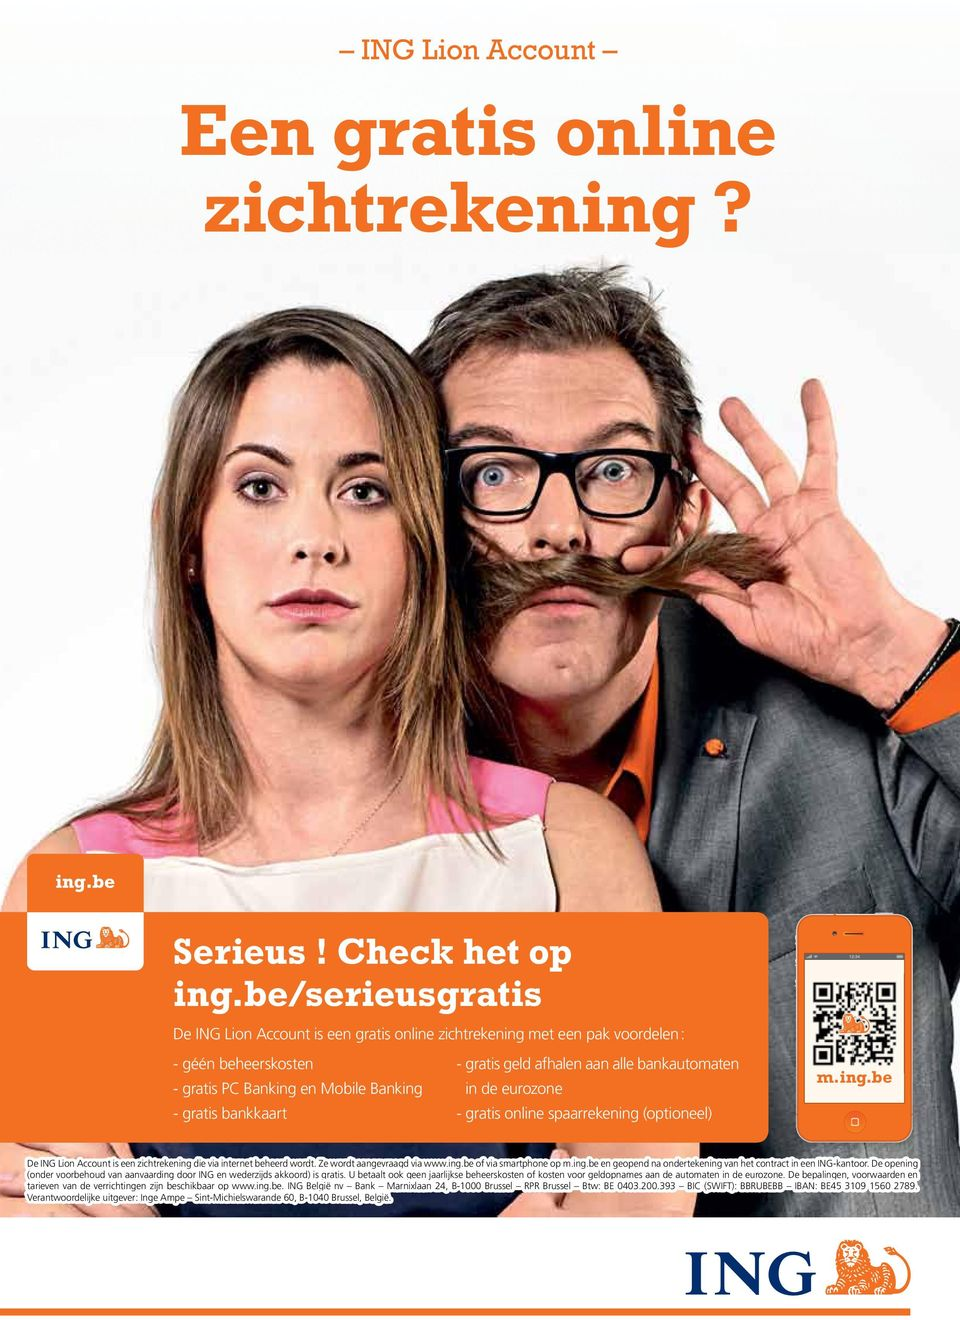 alle bankautomaten in de eurozone - gratis online spaarrekening (optioneel) m.ing.be De ING Lion Account is een zichtrekening die via internet beheerd wordt. Ze wordt aangevraagd via www.ing.be of via smartphone op m.